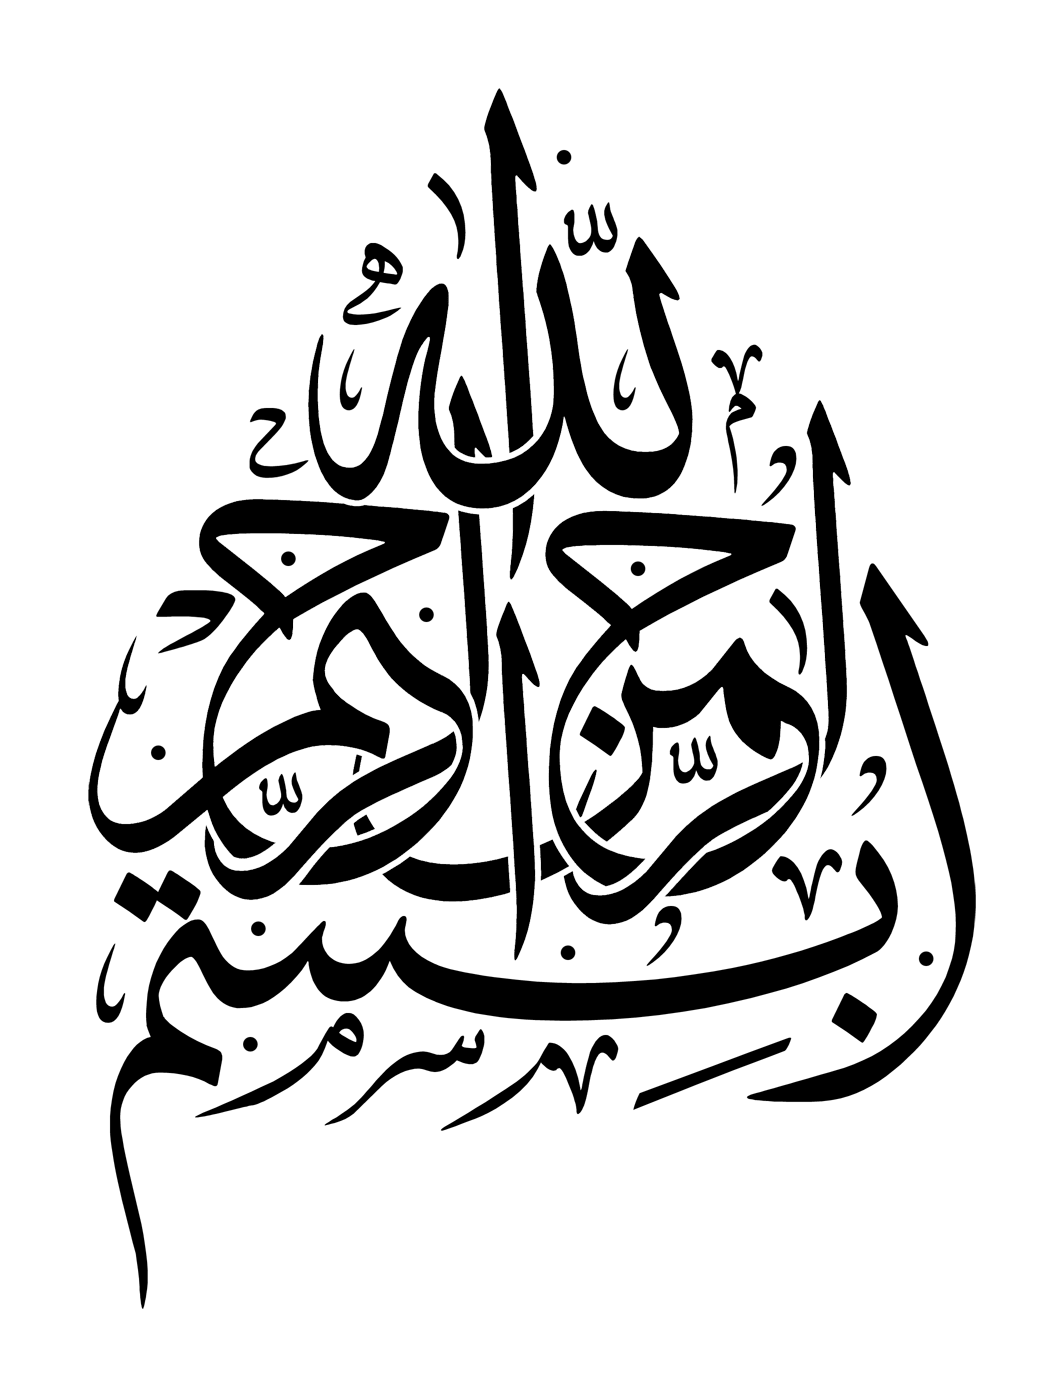 Urdu Calligraphy Font Free Download Text Layout Requirements For The Arabic Script